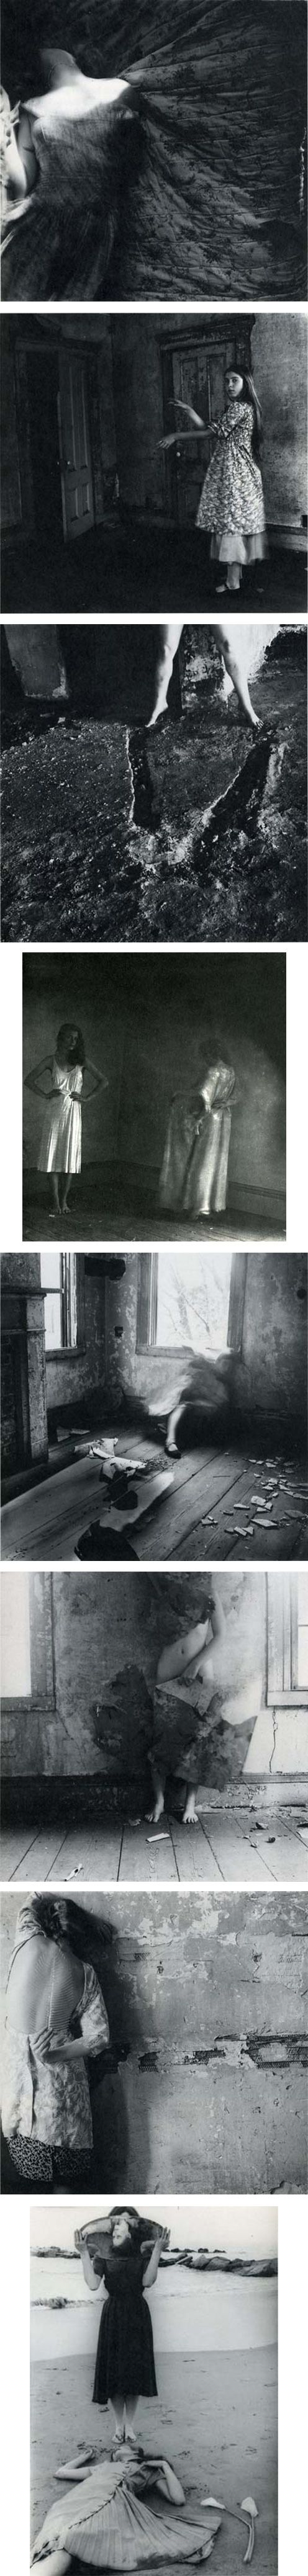 Francesca Woodman. I saw the documentary about her. Such a shame.